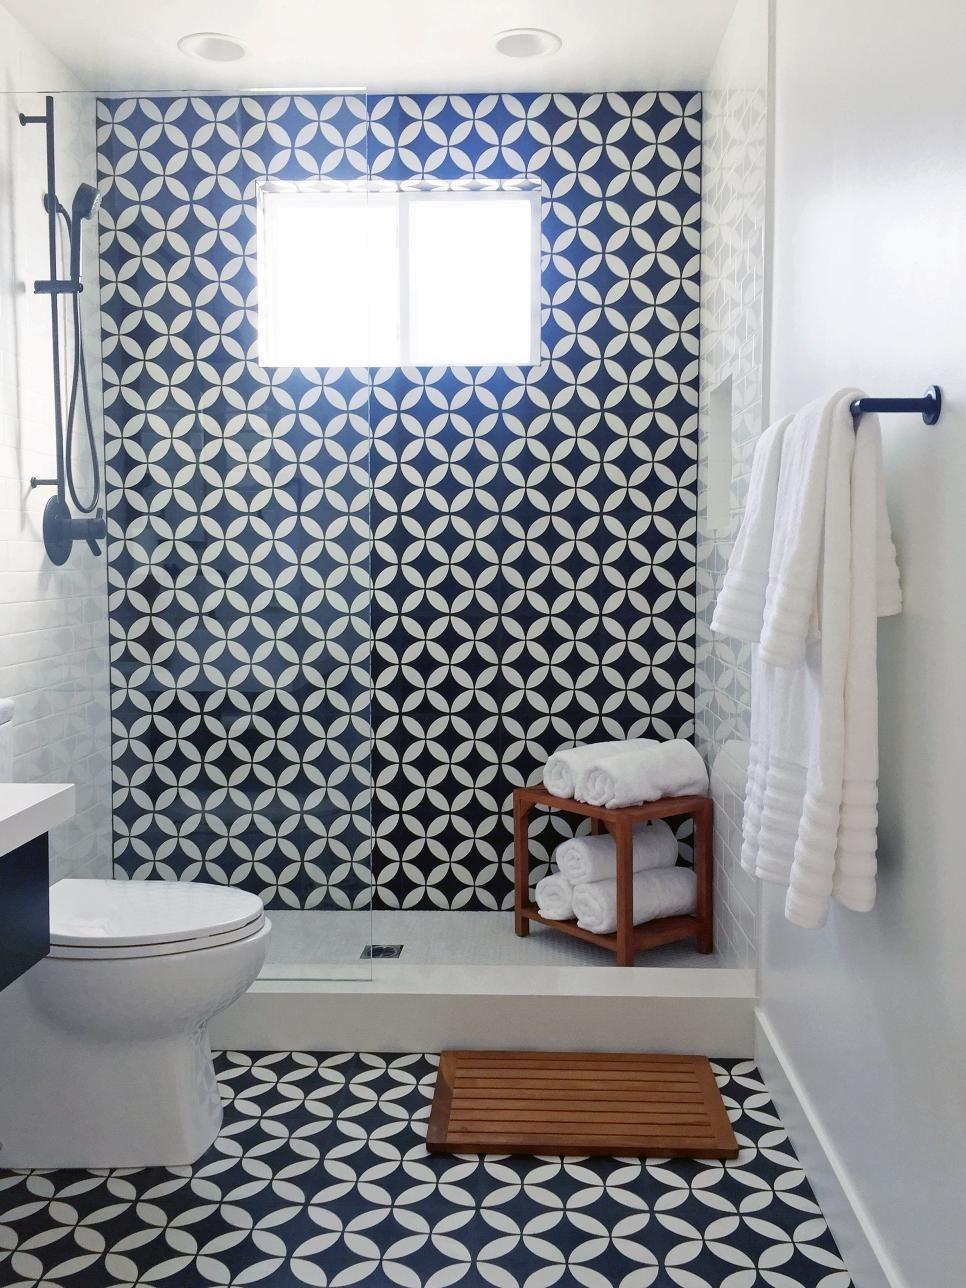 This Small Bathroom Was Remodeled With Black And White